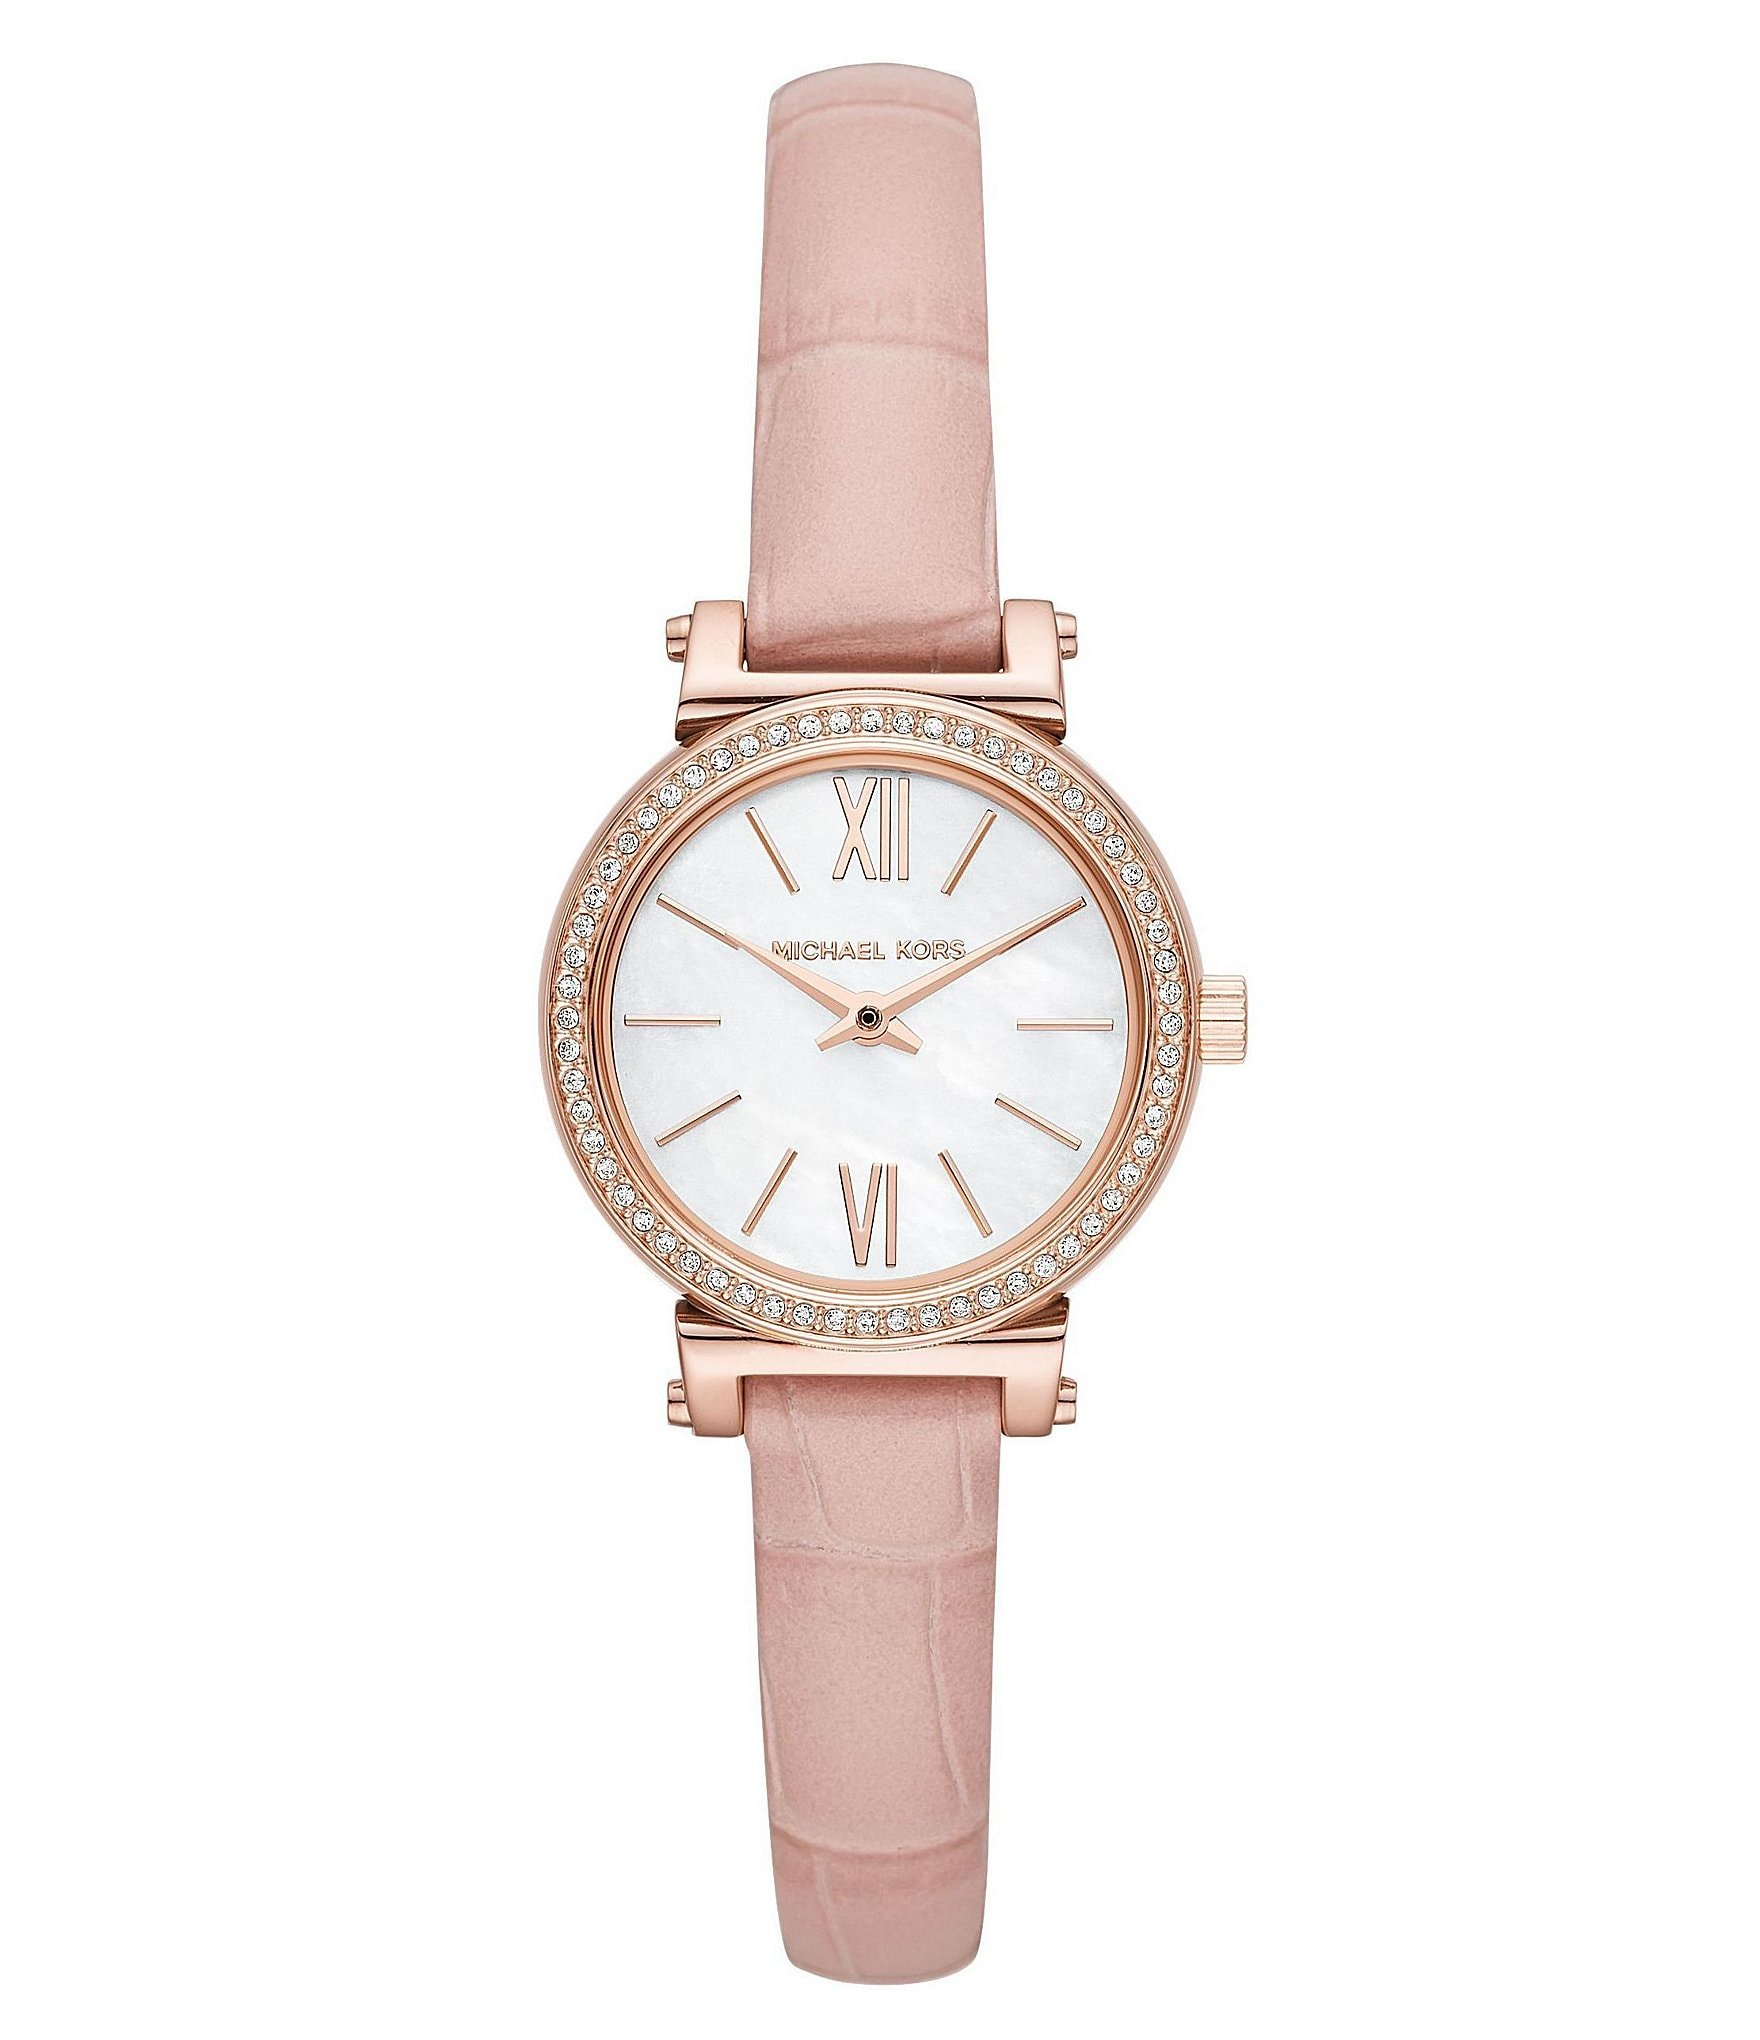 gold buyolivia rose strap mesh pink womens main women online bracelet winter watch white rsp pdp olivia s burton watches garden